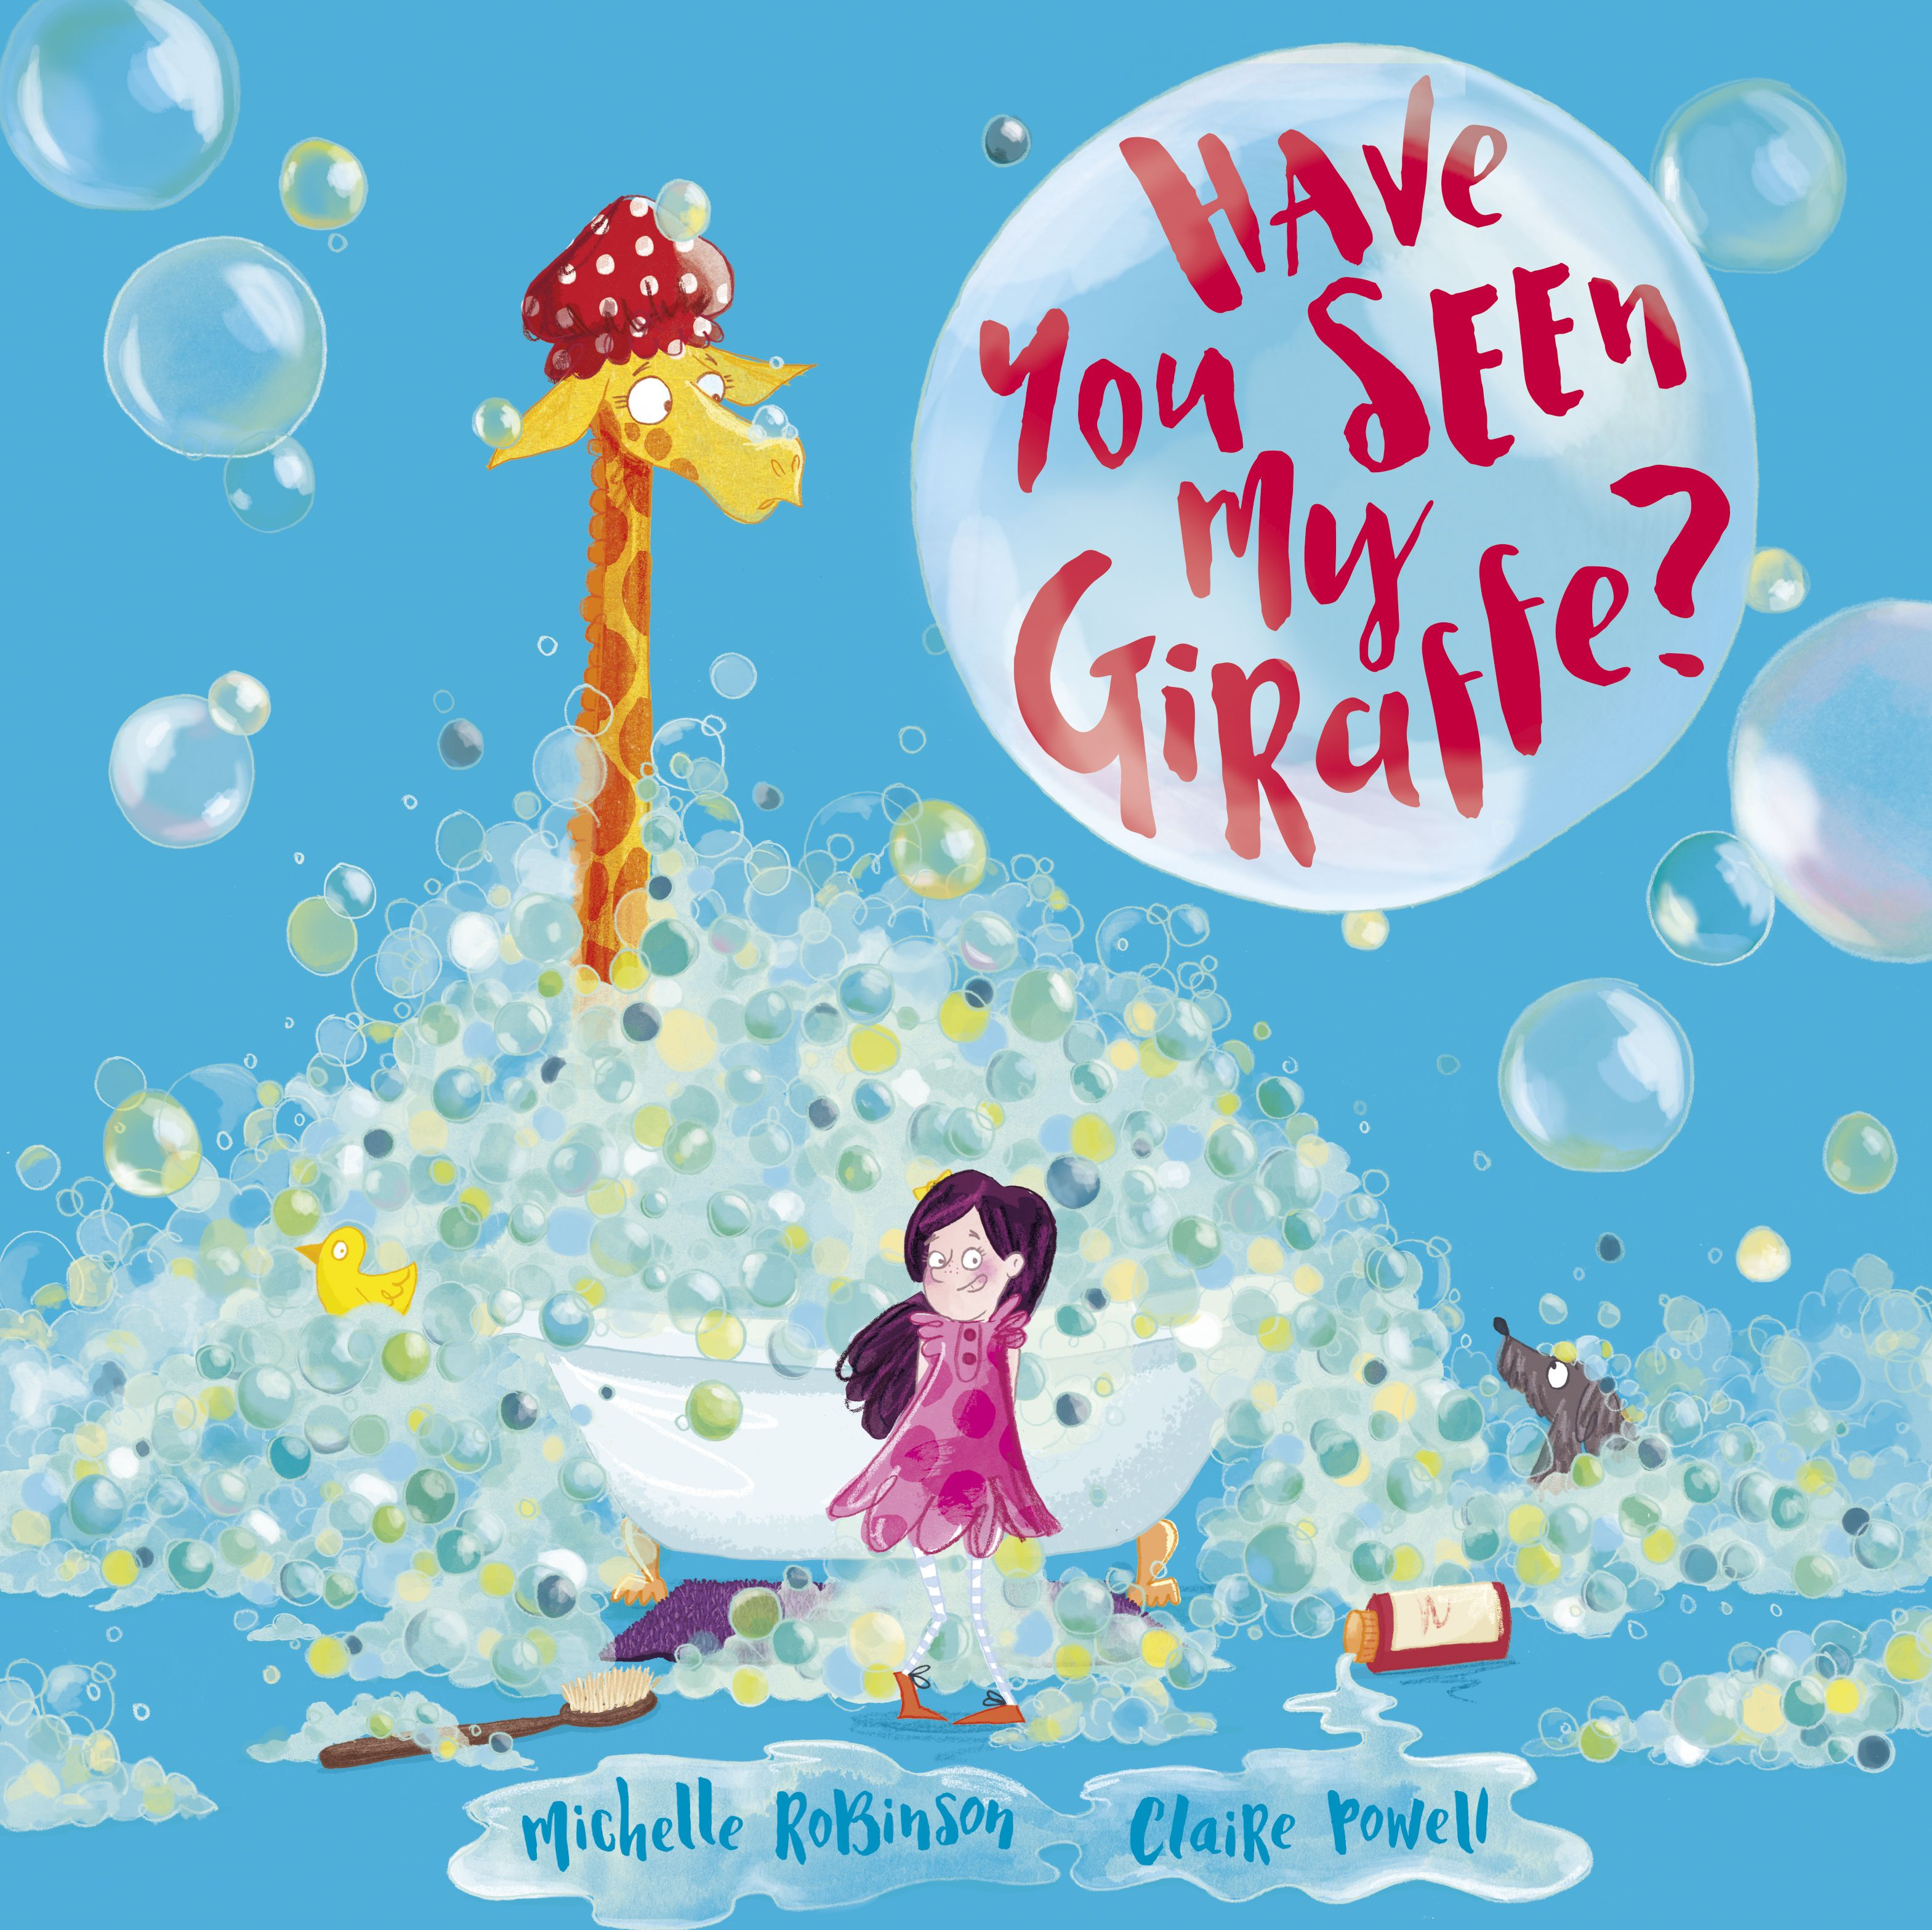 Have You Seen My Giraffe? Written by Michelle Robinson, illustrated by Claire Powell - July 2017